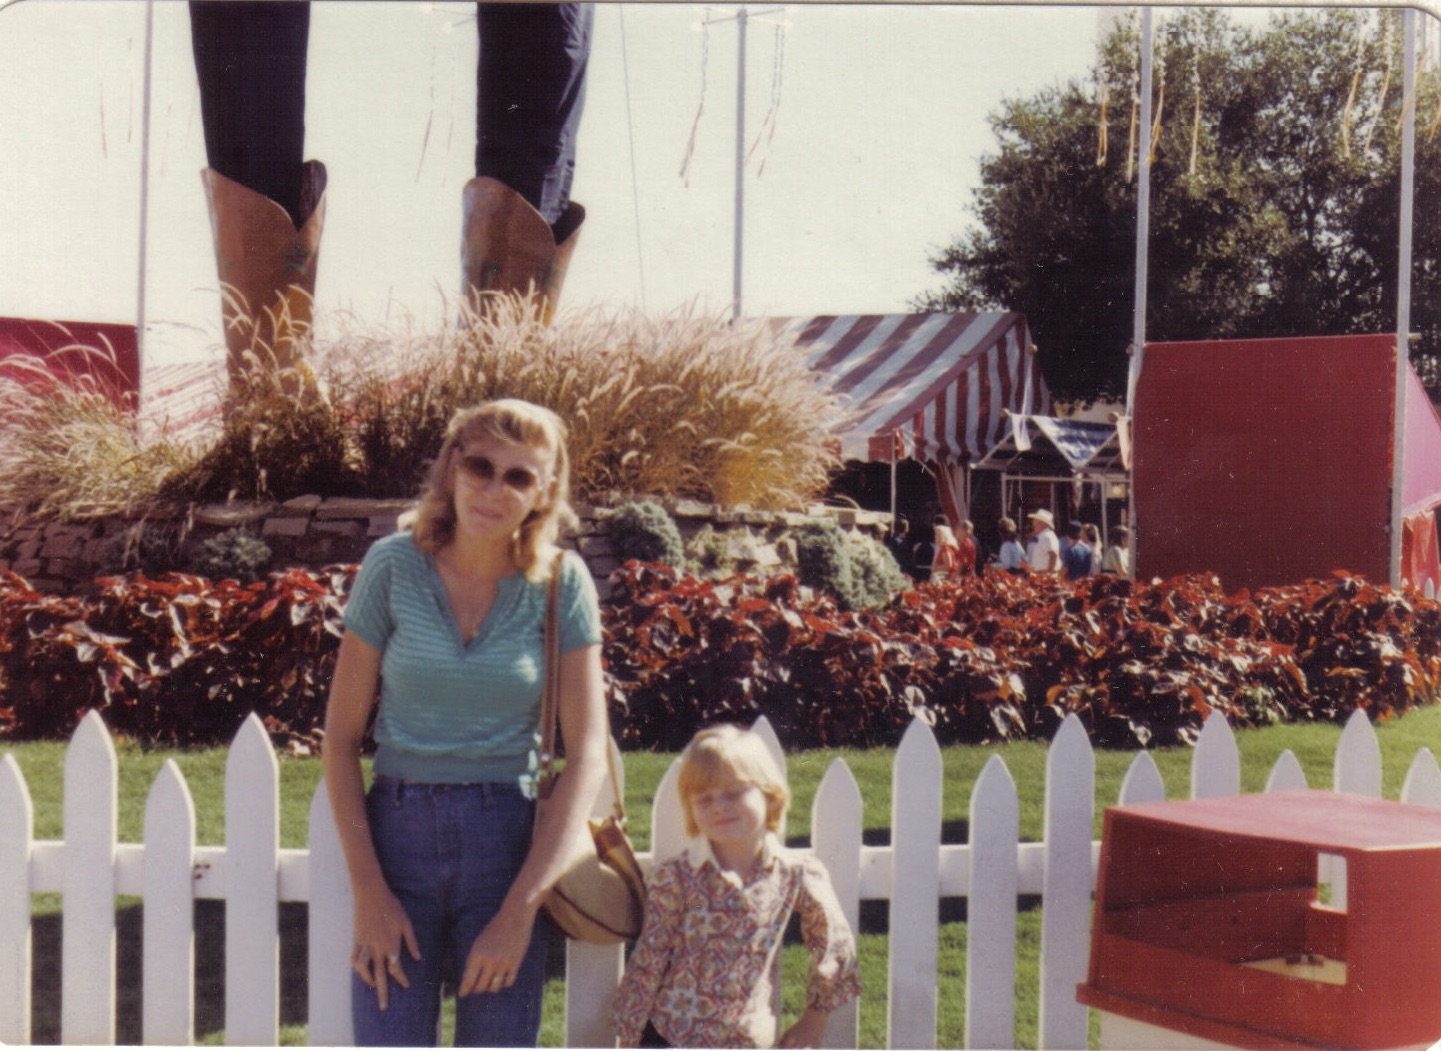 Mom and I in front of Big Tex. Some time in the late 70s or early 80s because that is an AWESOME paisley shirt I've got going on. BONUS PLOT SWAP for you: The position of her right hand is not an accident. Let your mind play with that for a little while. I'd seen this picture throughout my entire life and was in my 30s before I ever noticed.